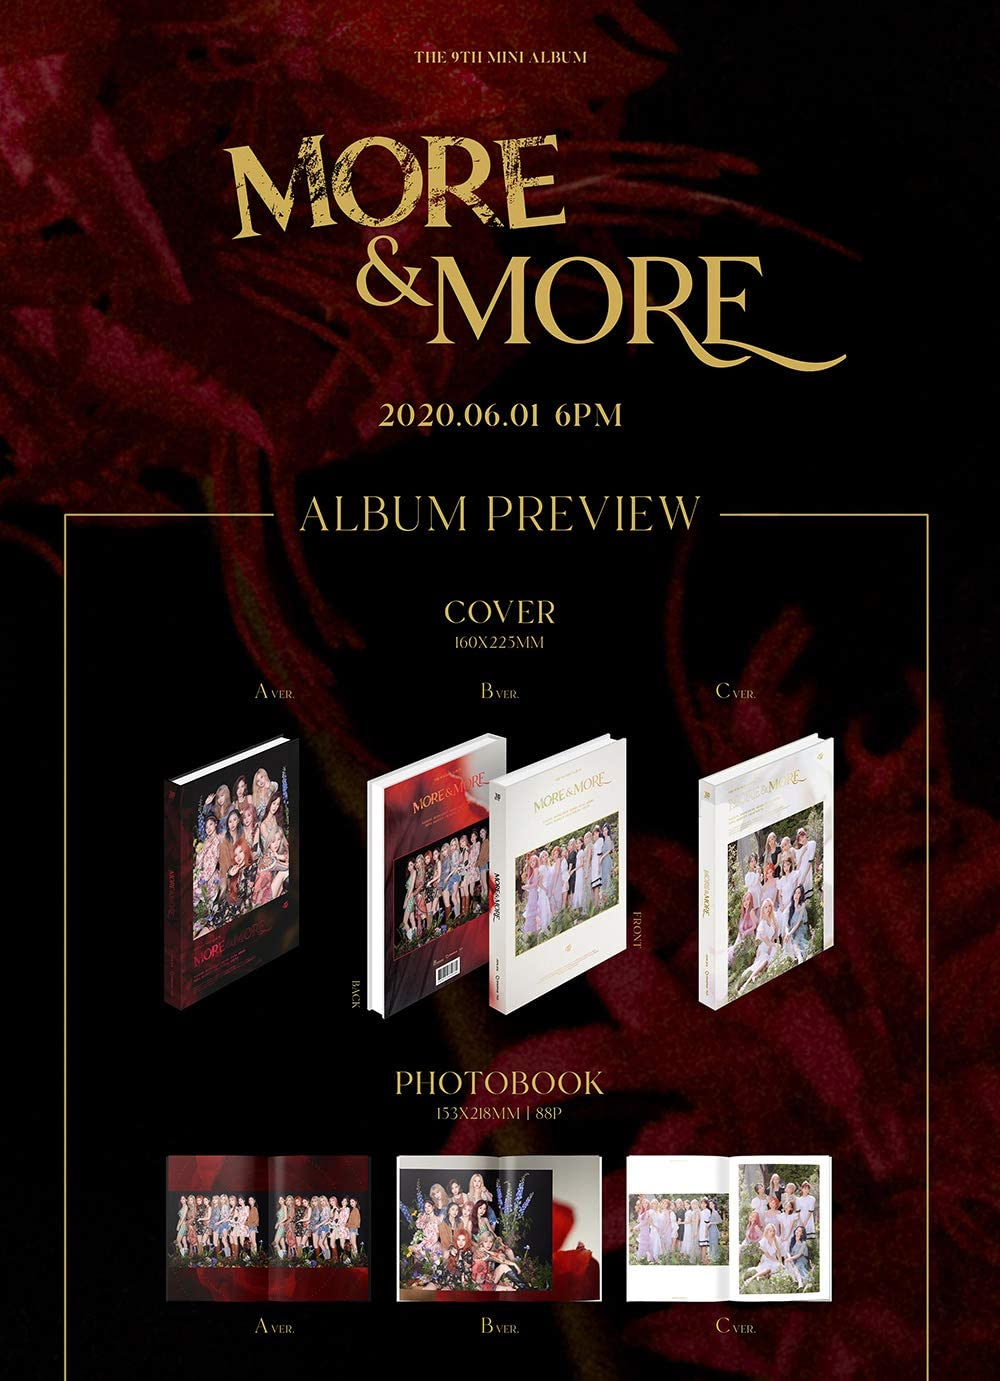 JYP Twice A+B+C ver. Set 9th Mini Album Album+Pre-Order Benefit+Folded Poster+Extra Photocards Set More /& More